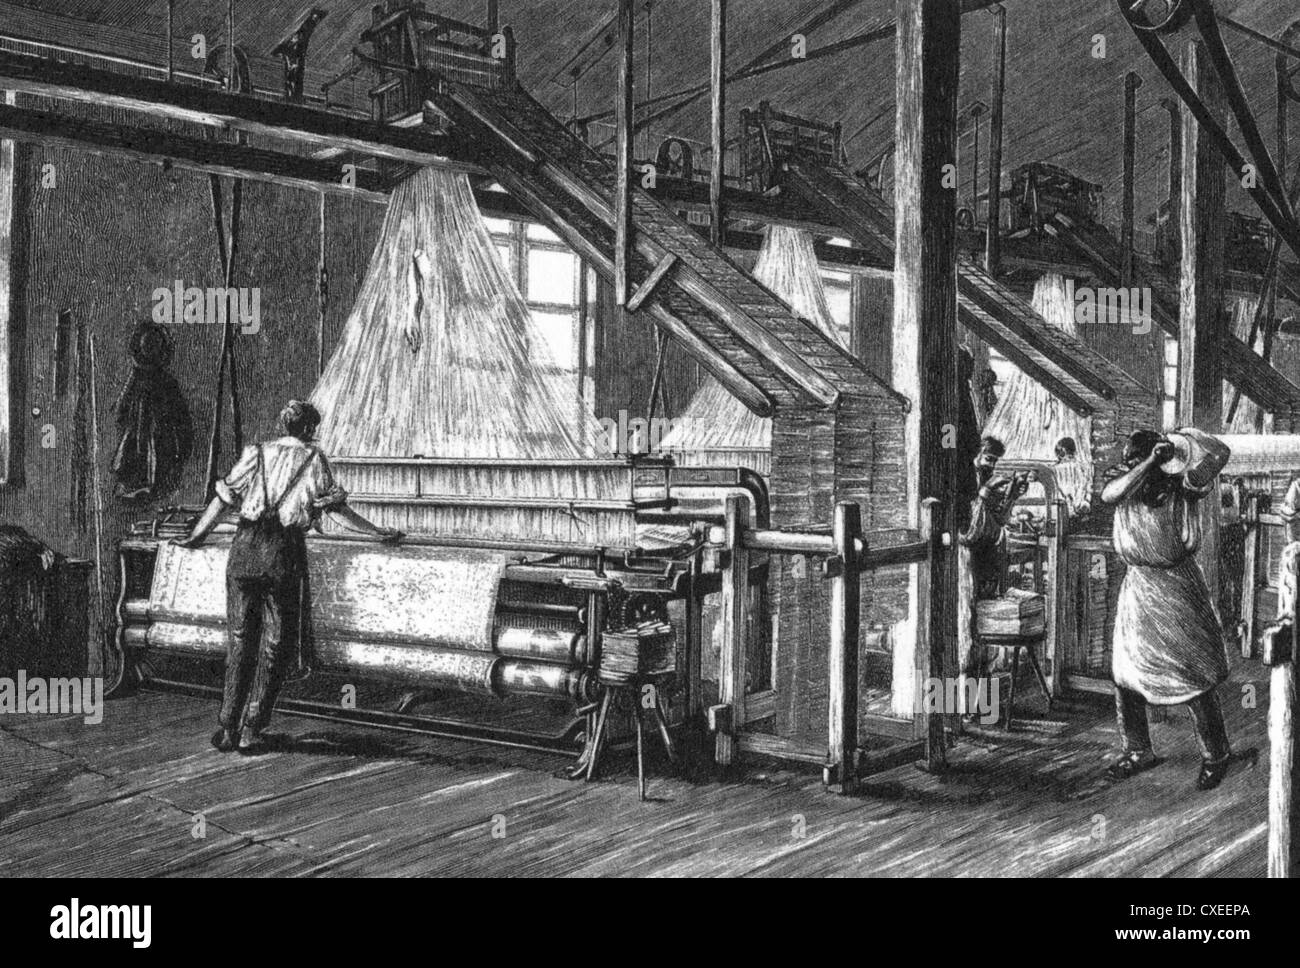 POWERED WEAVING MILL in Lancashire about 1850 - Stock Image